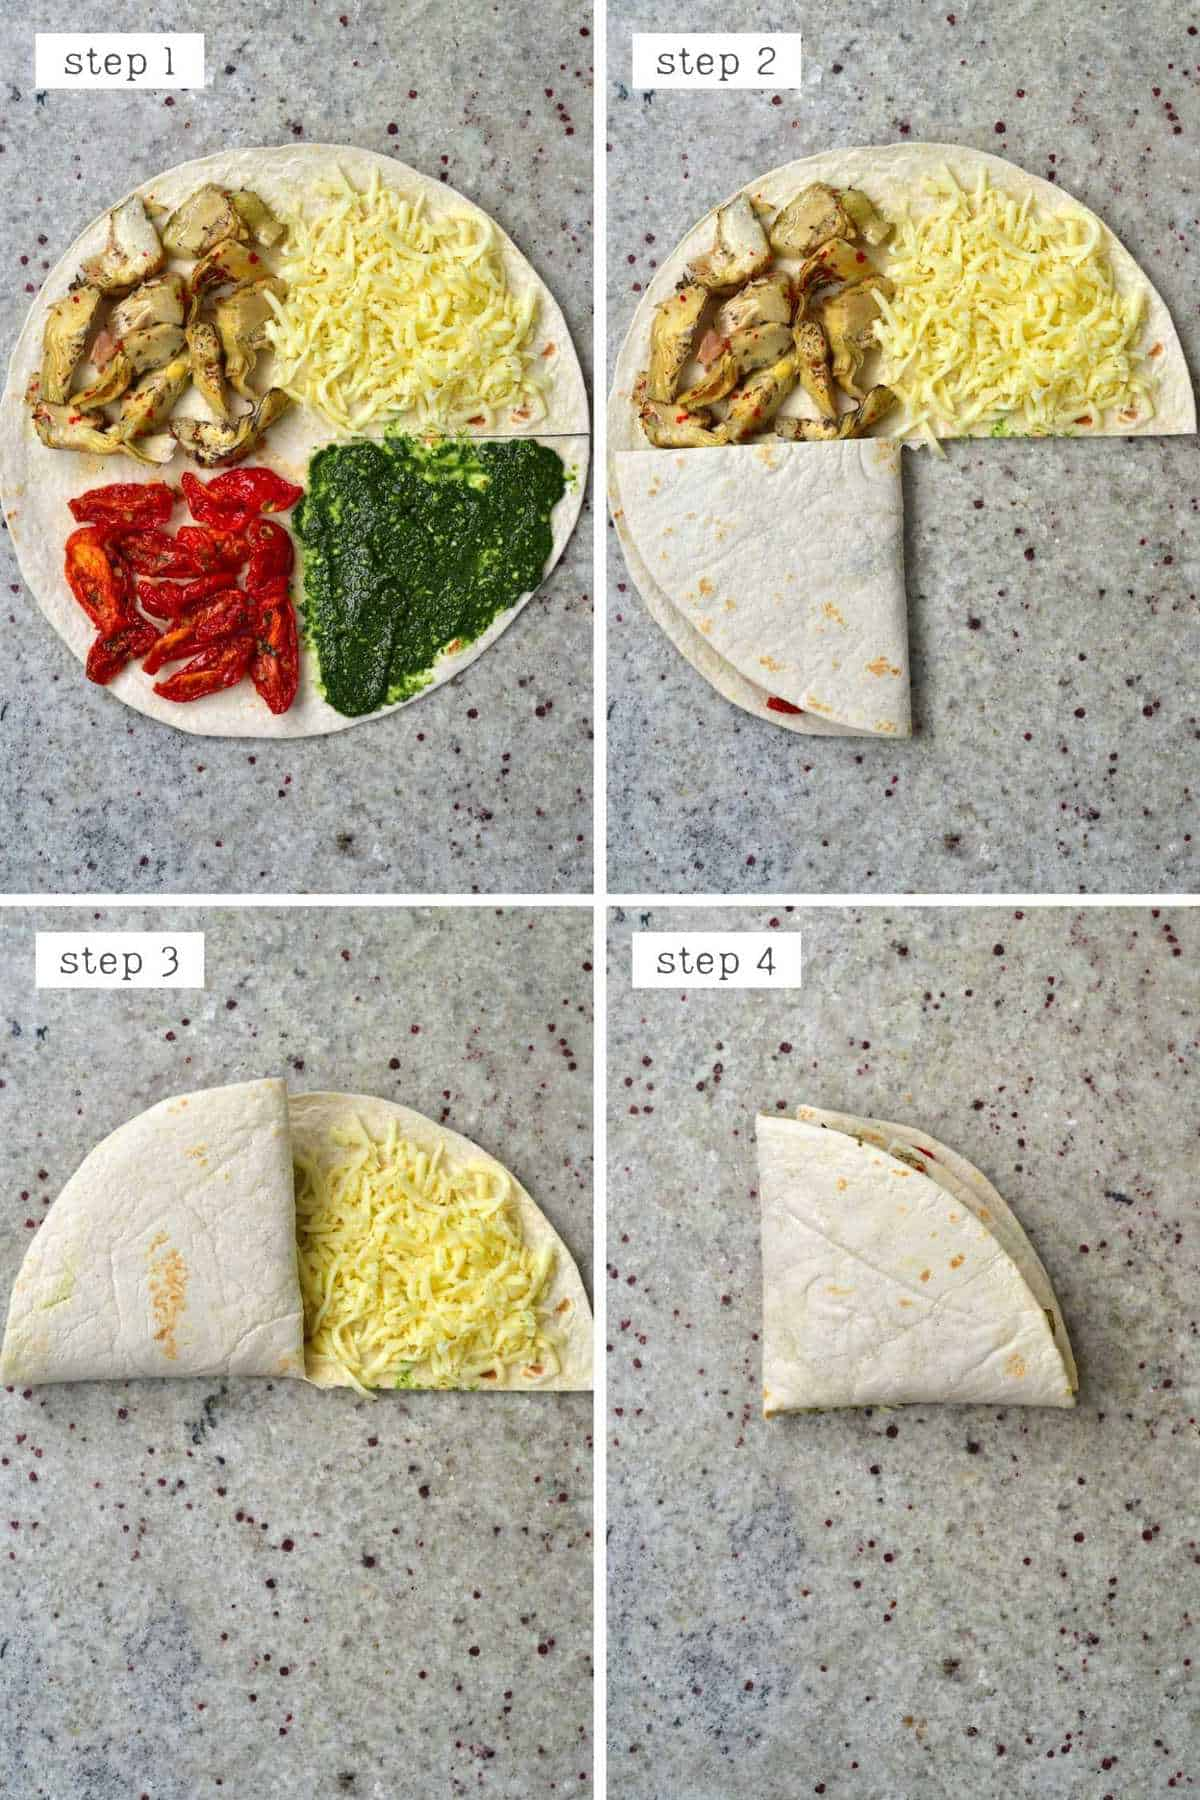 Steps for folding a tortilla